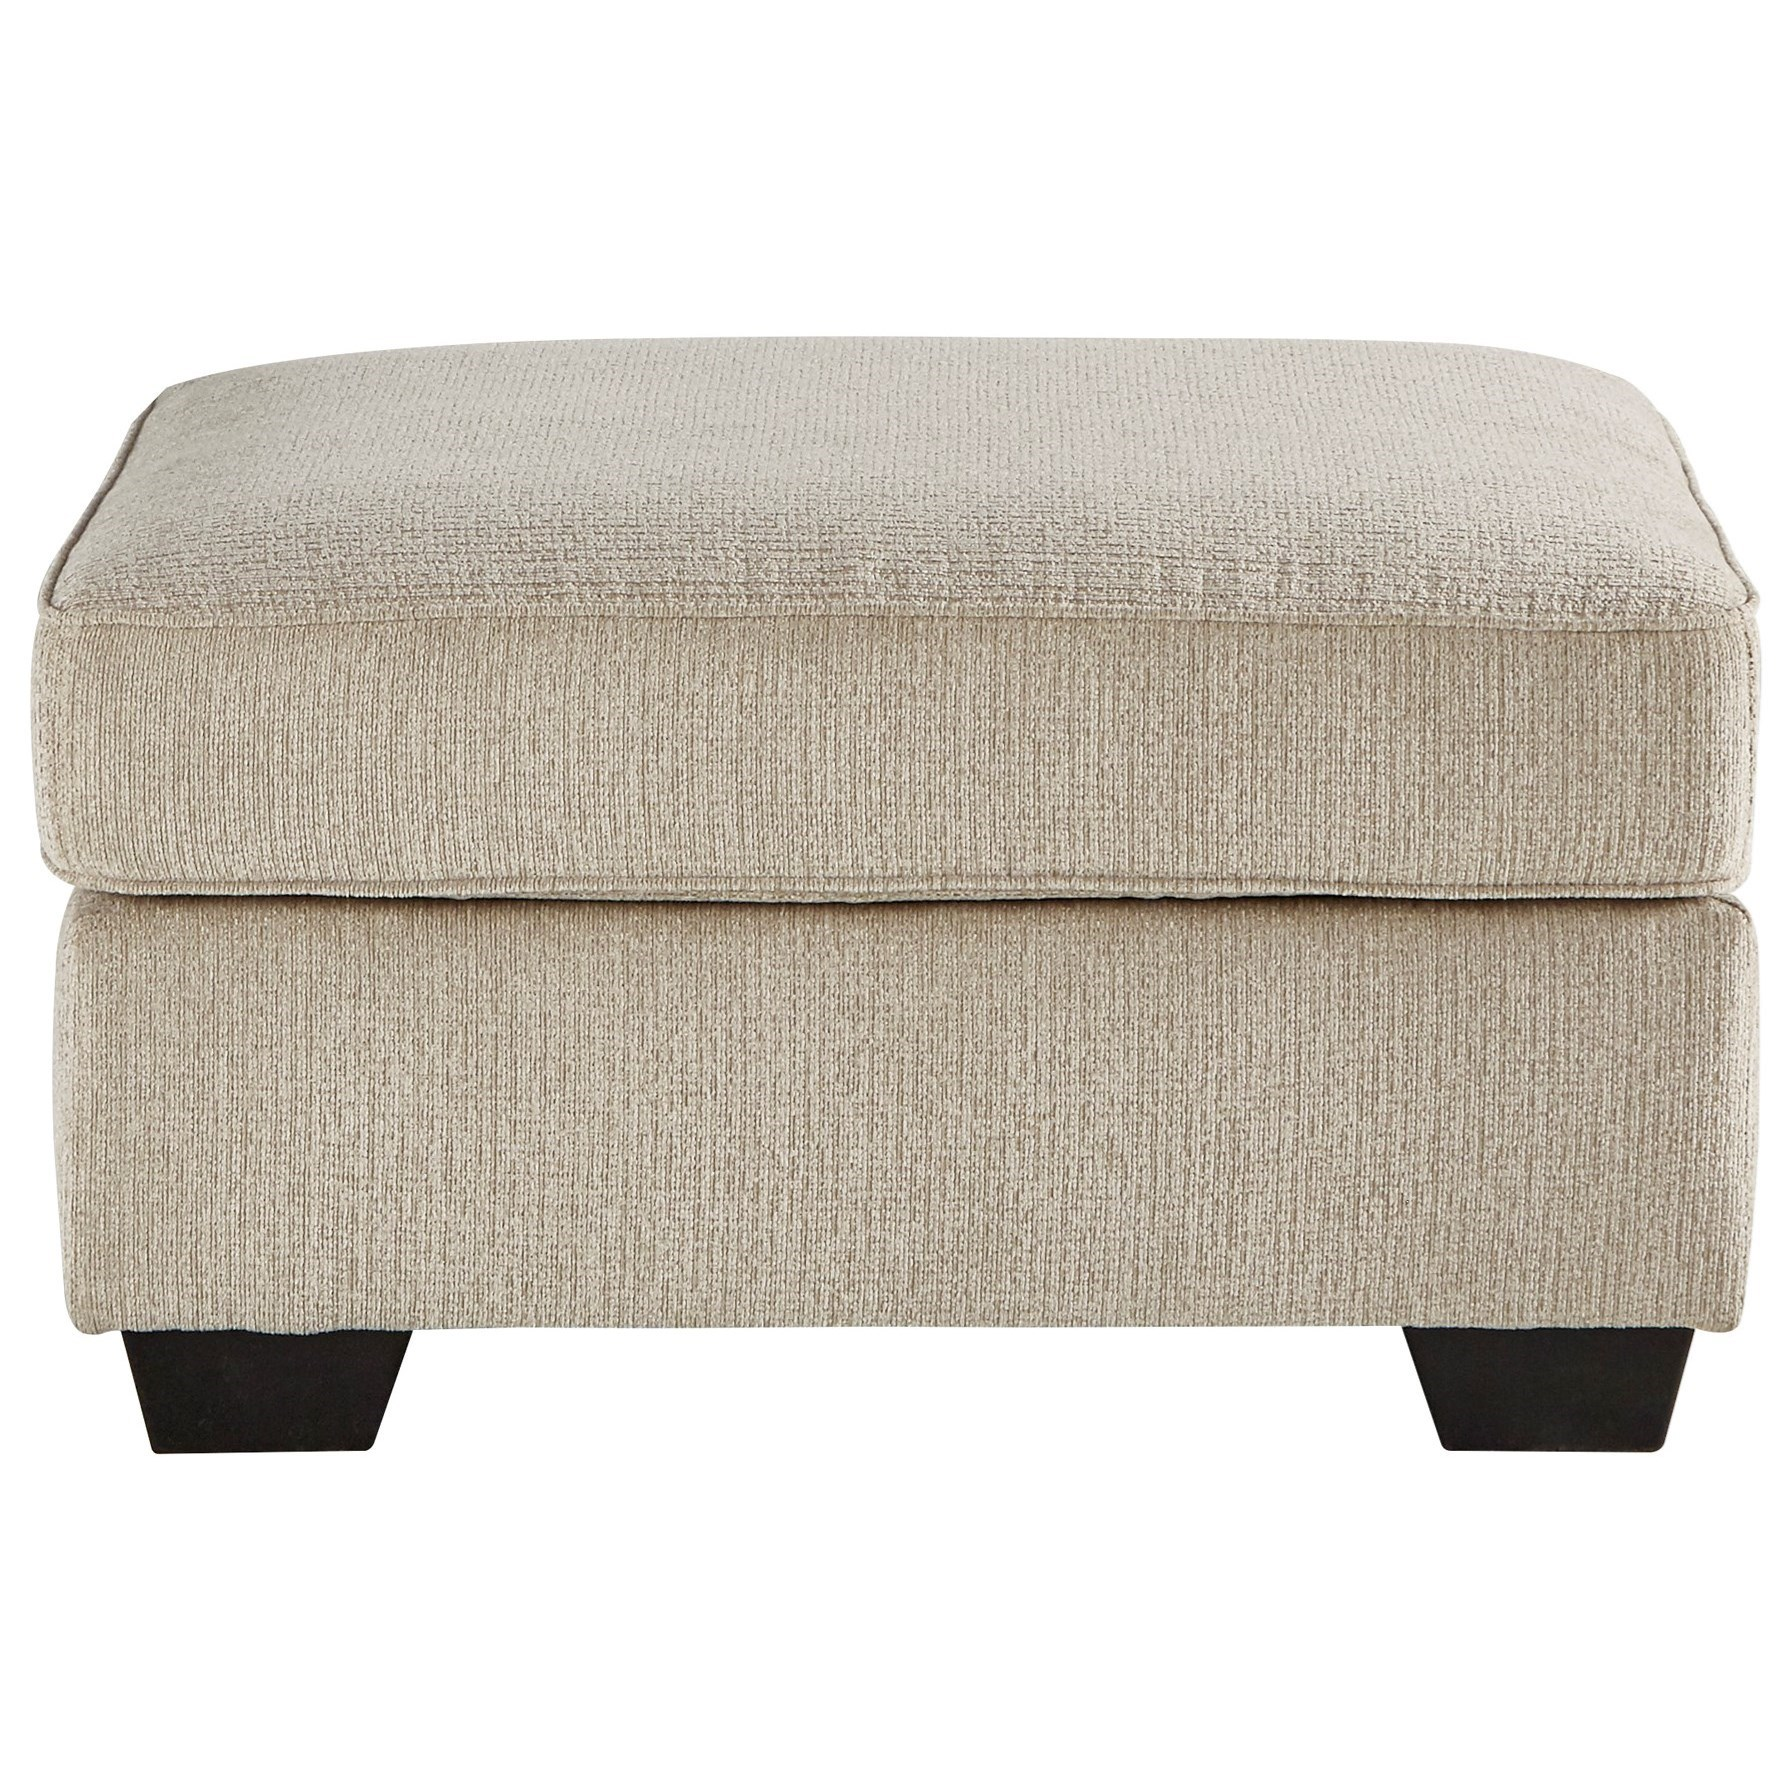 Decelle Oversized Accent Ottoman by Signature at Walker's Furniture